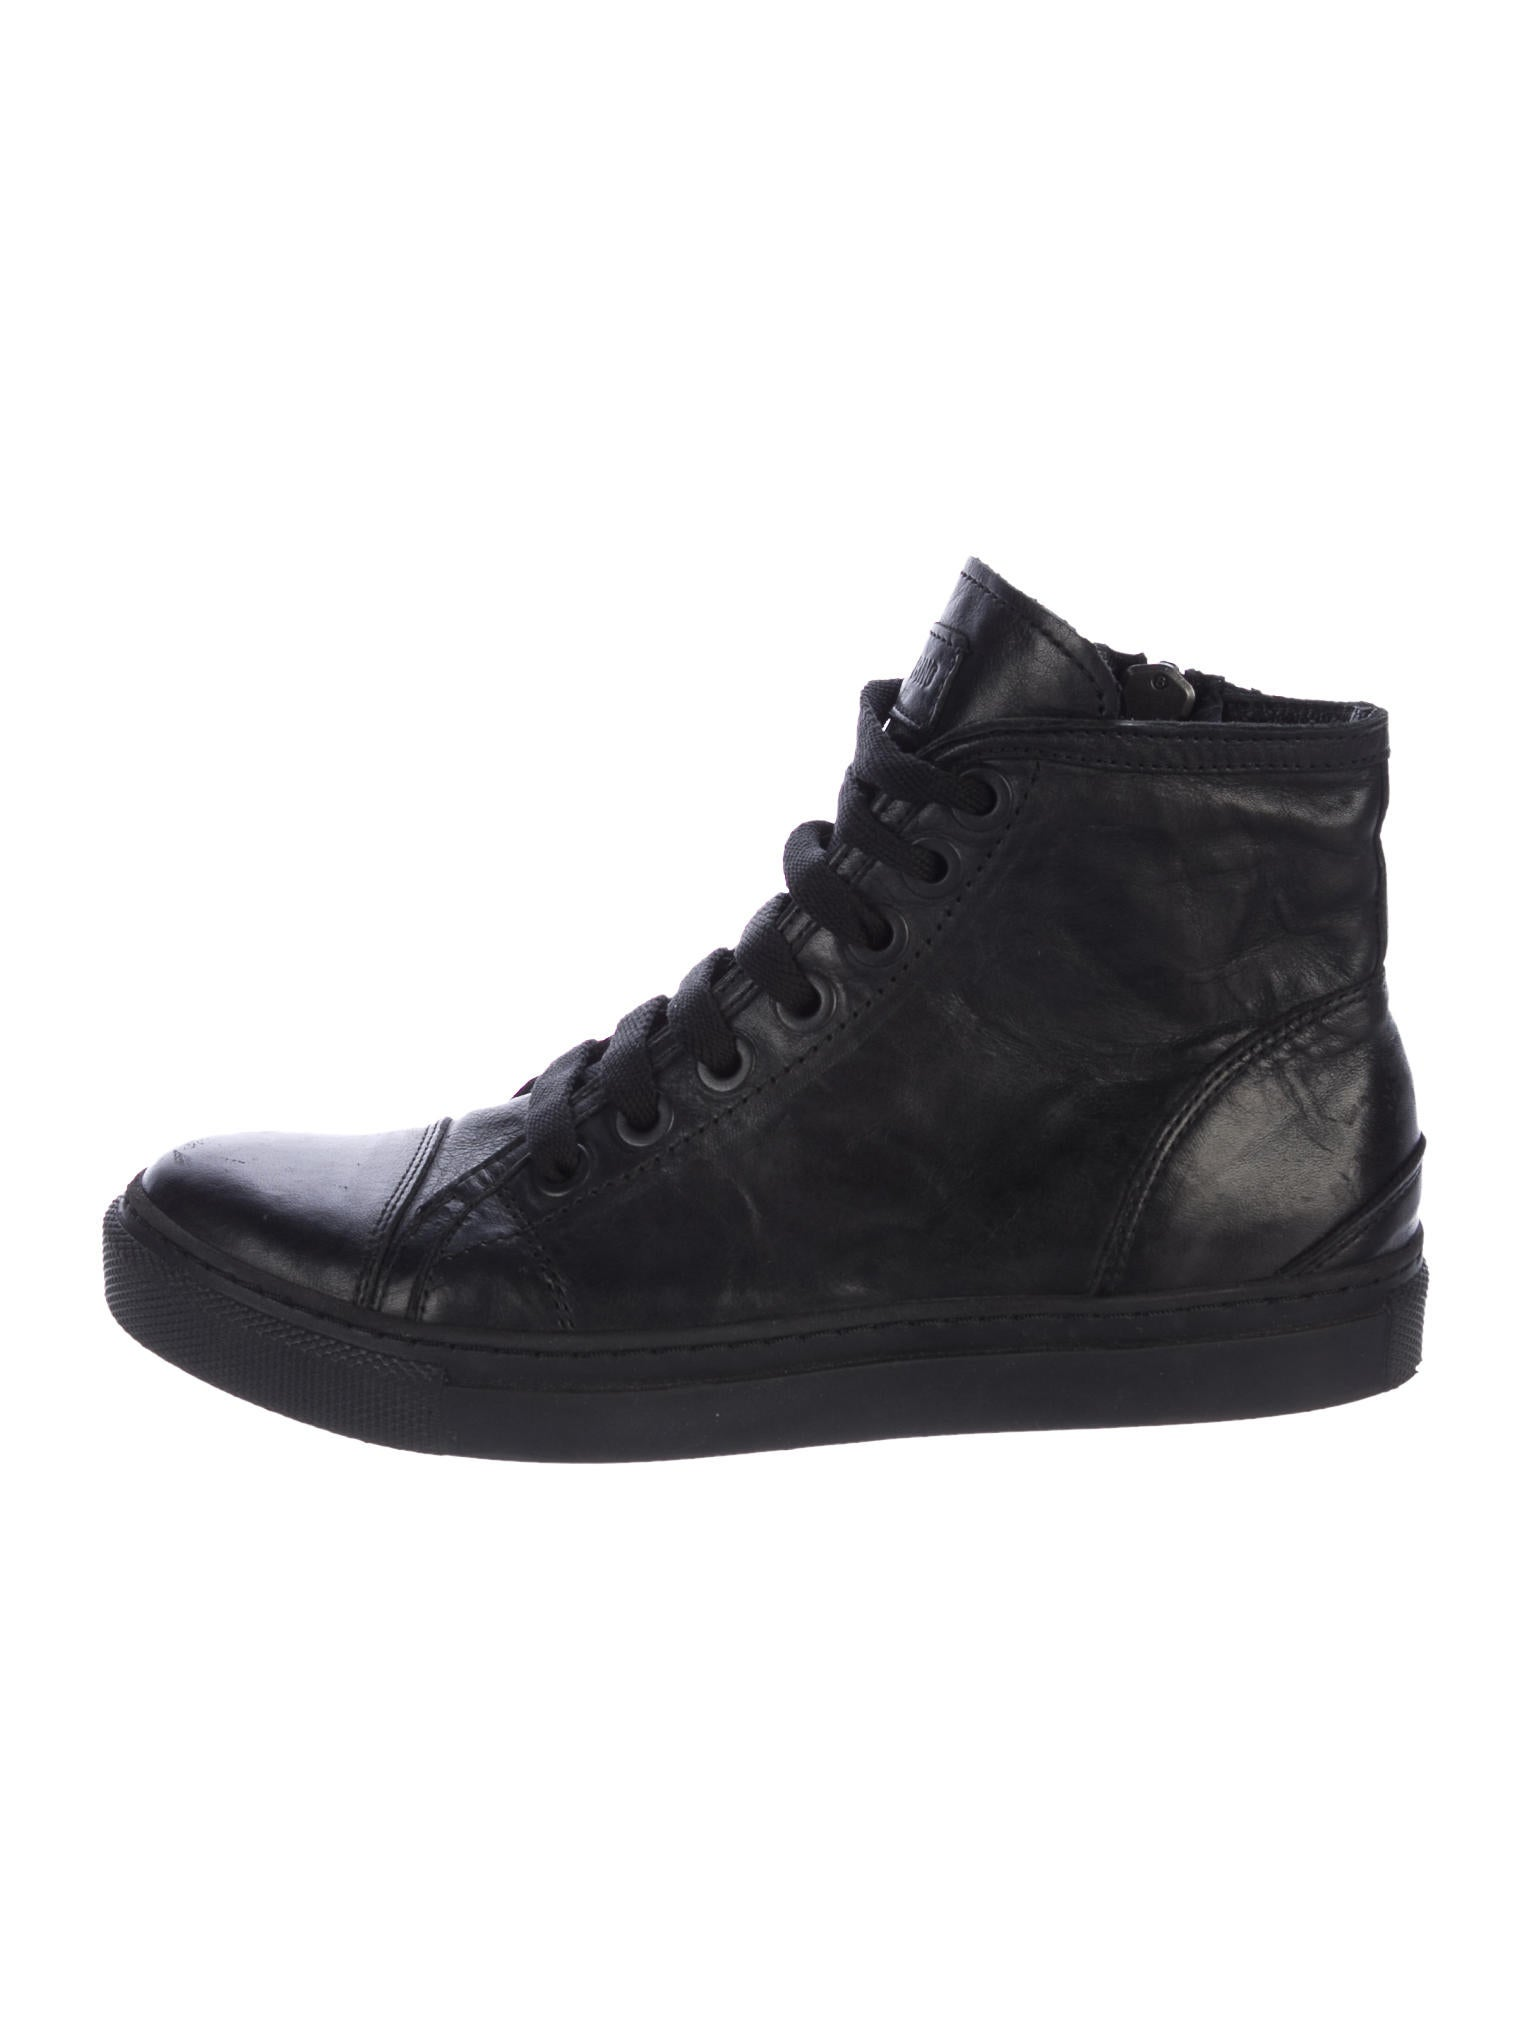 buy sale online brand new unisex for sale Anine Bing Leather High-Top Sneakers cheap sale geniue stockist uI9fHhSe